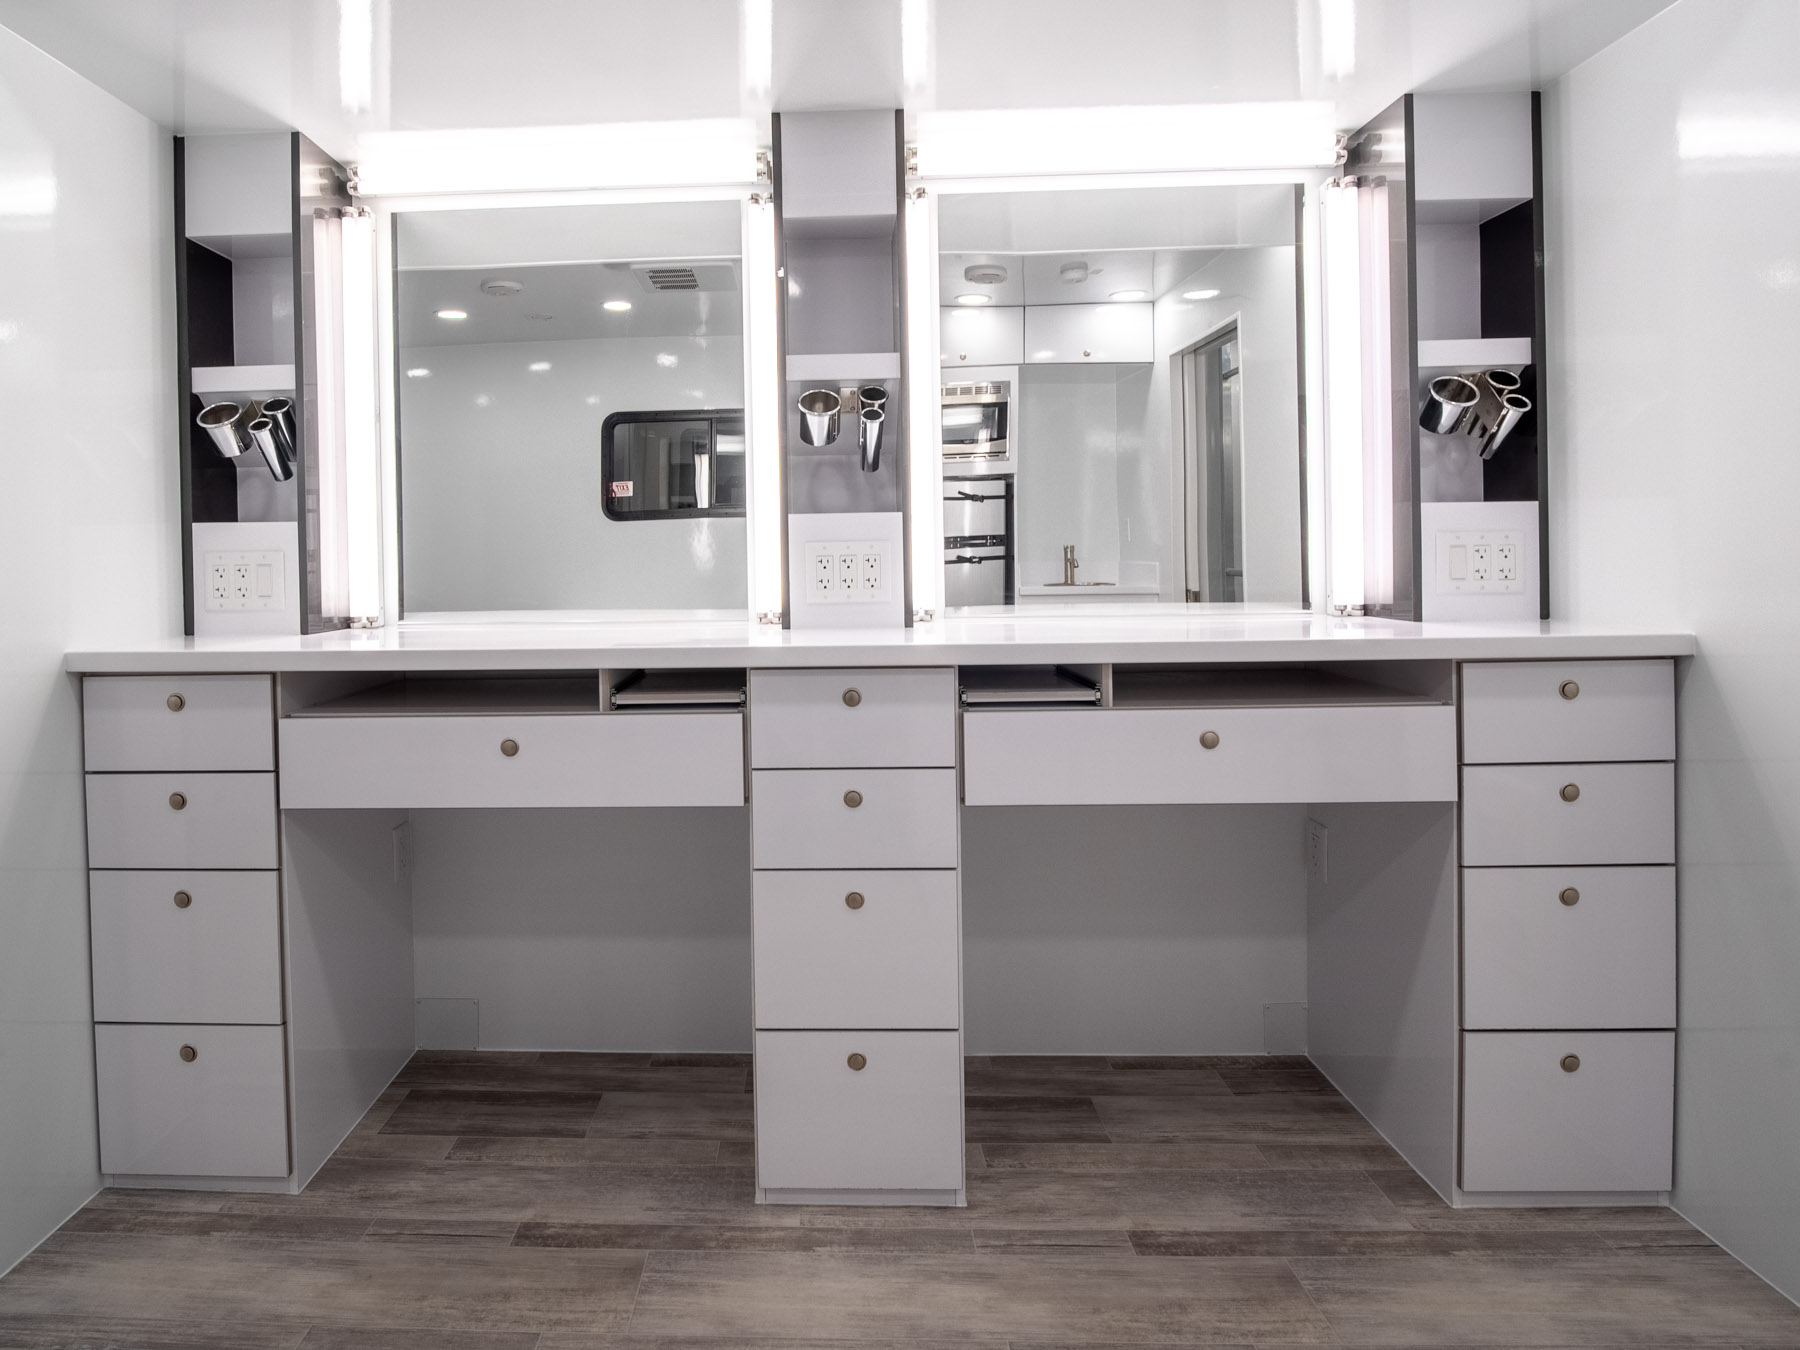 2020 - MAKEUP & WARDROBE mirror view